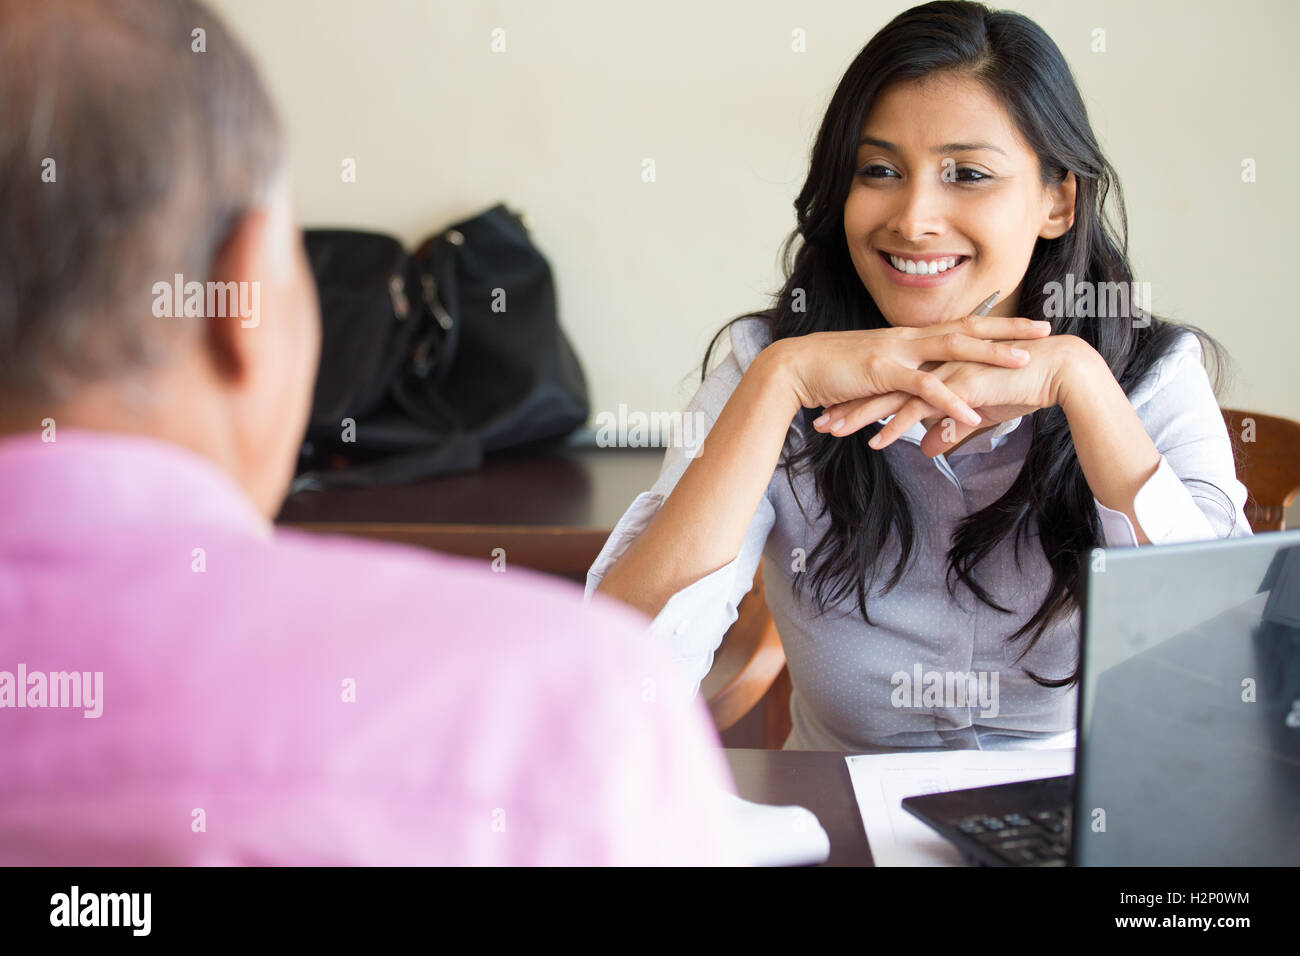 Closeup portrait, appointment with office manager, job interview, hiring, isolated indoors office background. - Stock Image